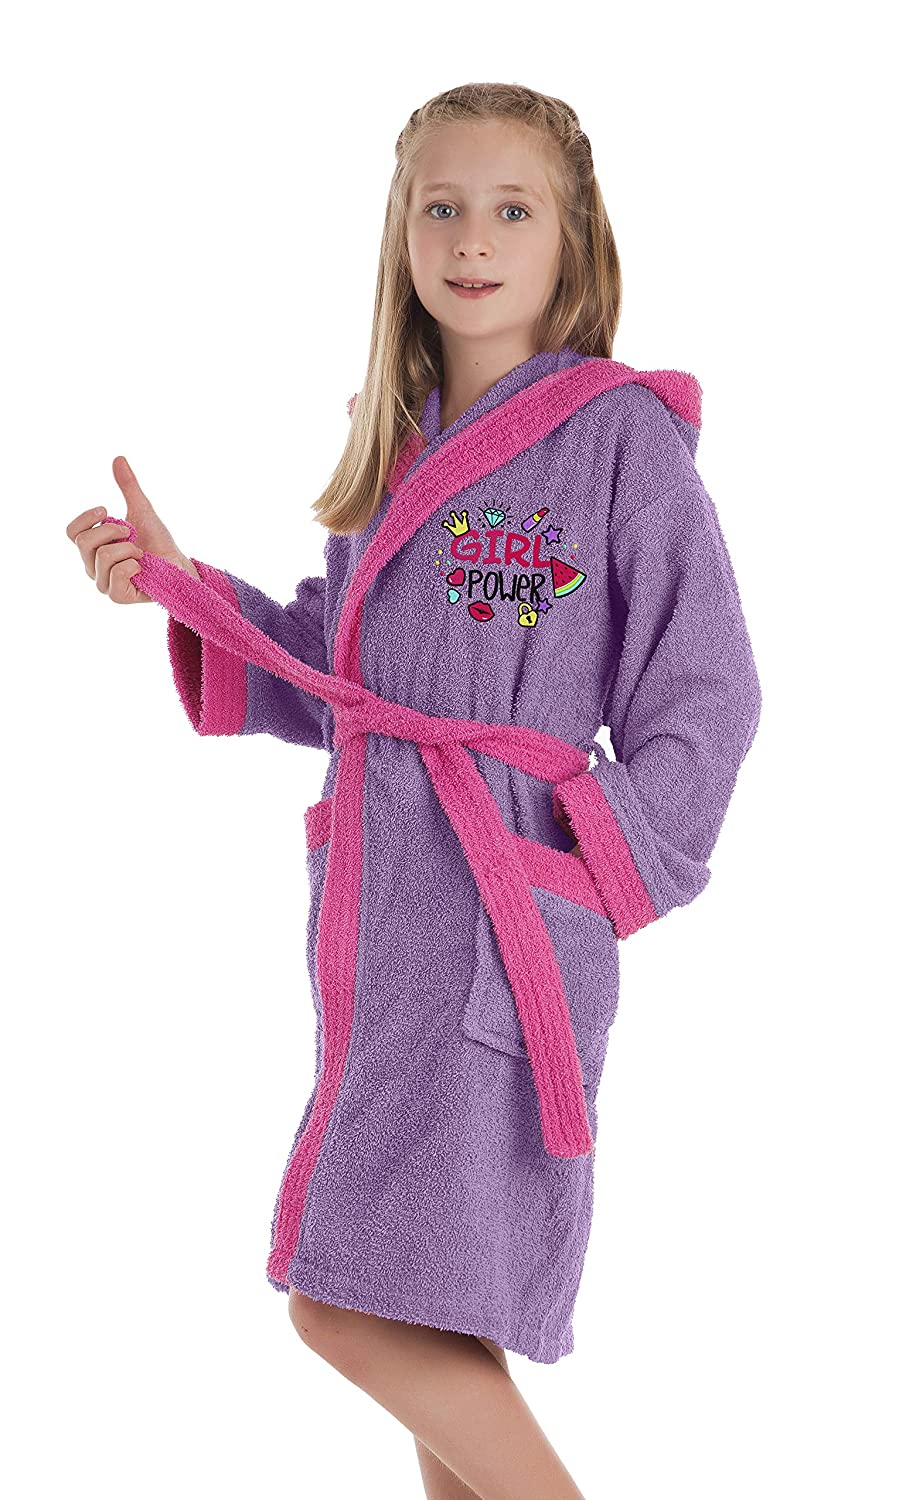 Secaneta Children's Dressing Gown Girl's Bathrobe with Embroidered Designs Unicorn 14 años / 14 years old José Albero Puerto S.L.